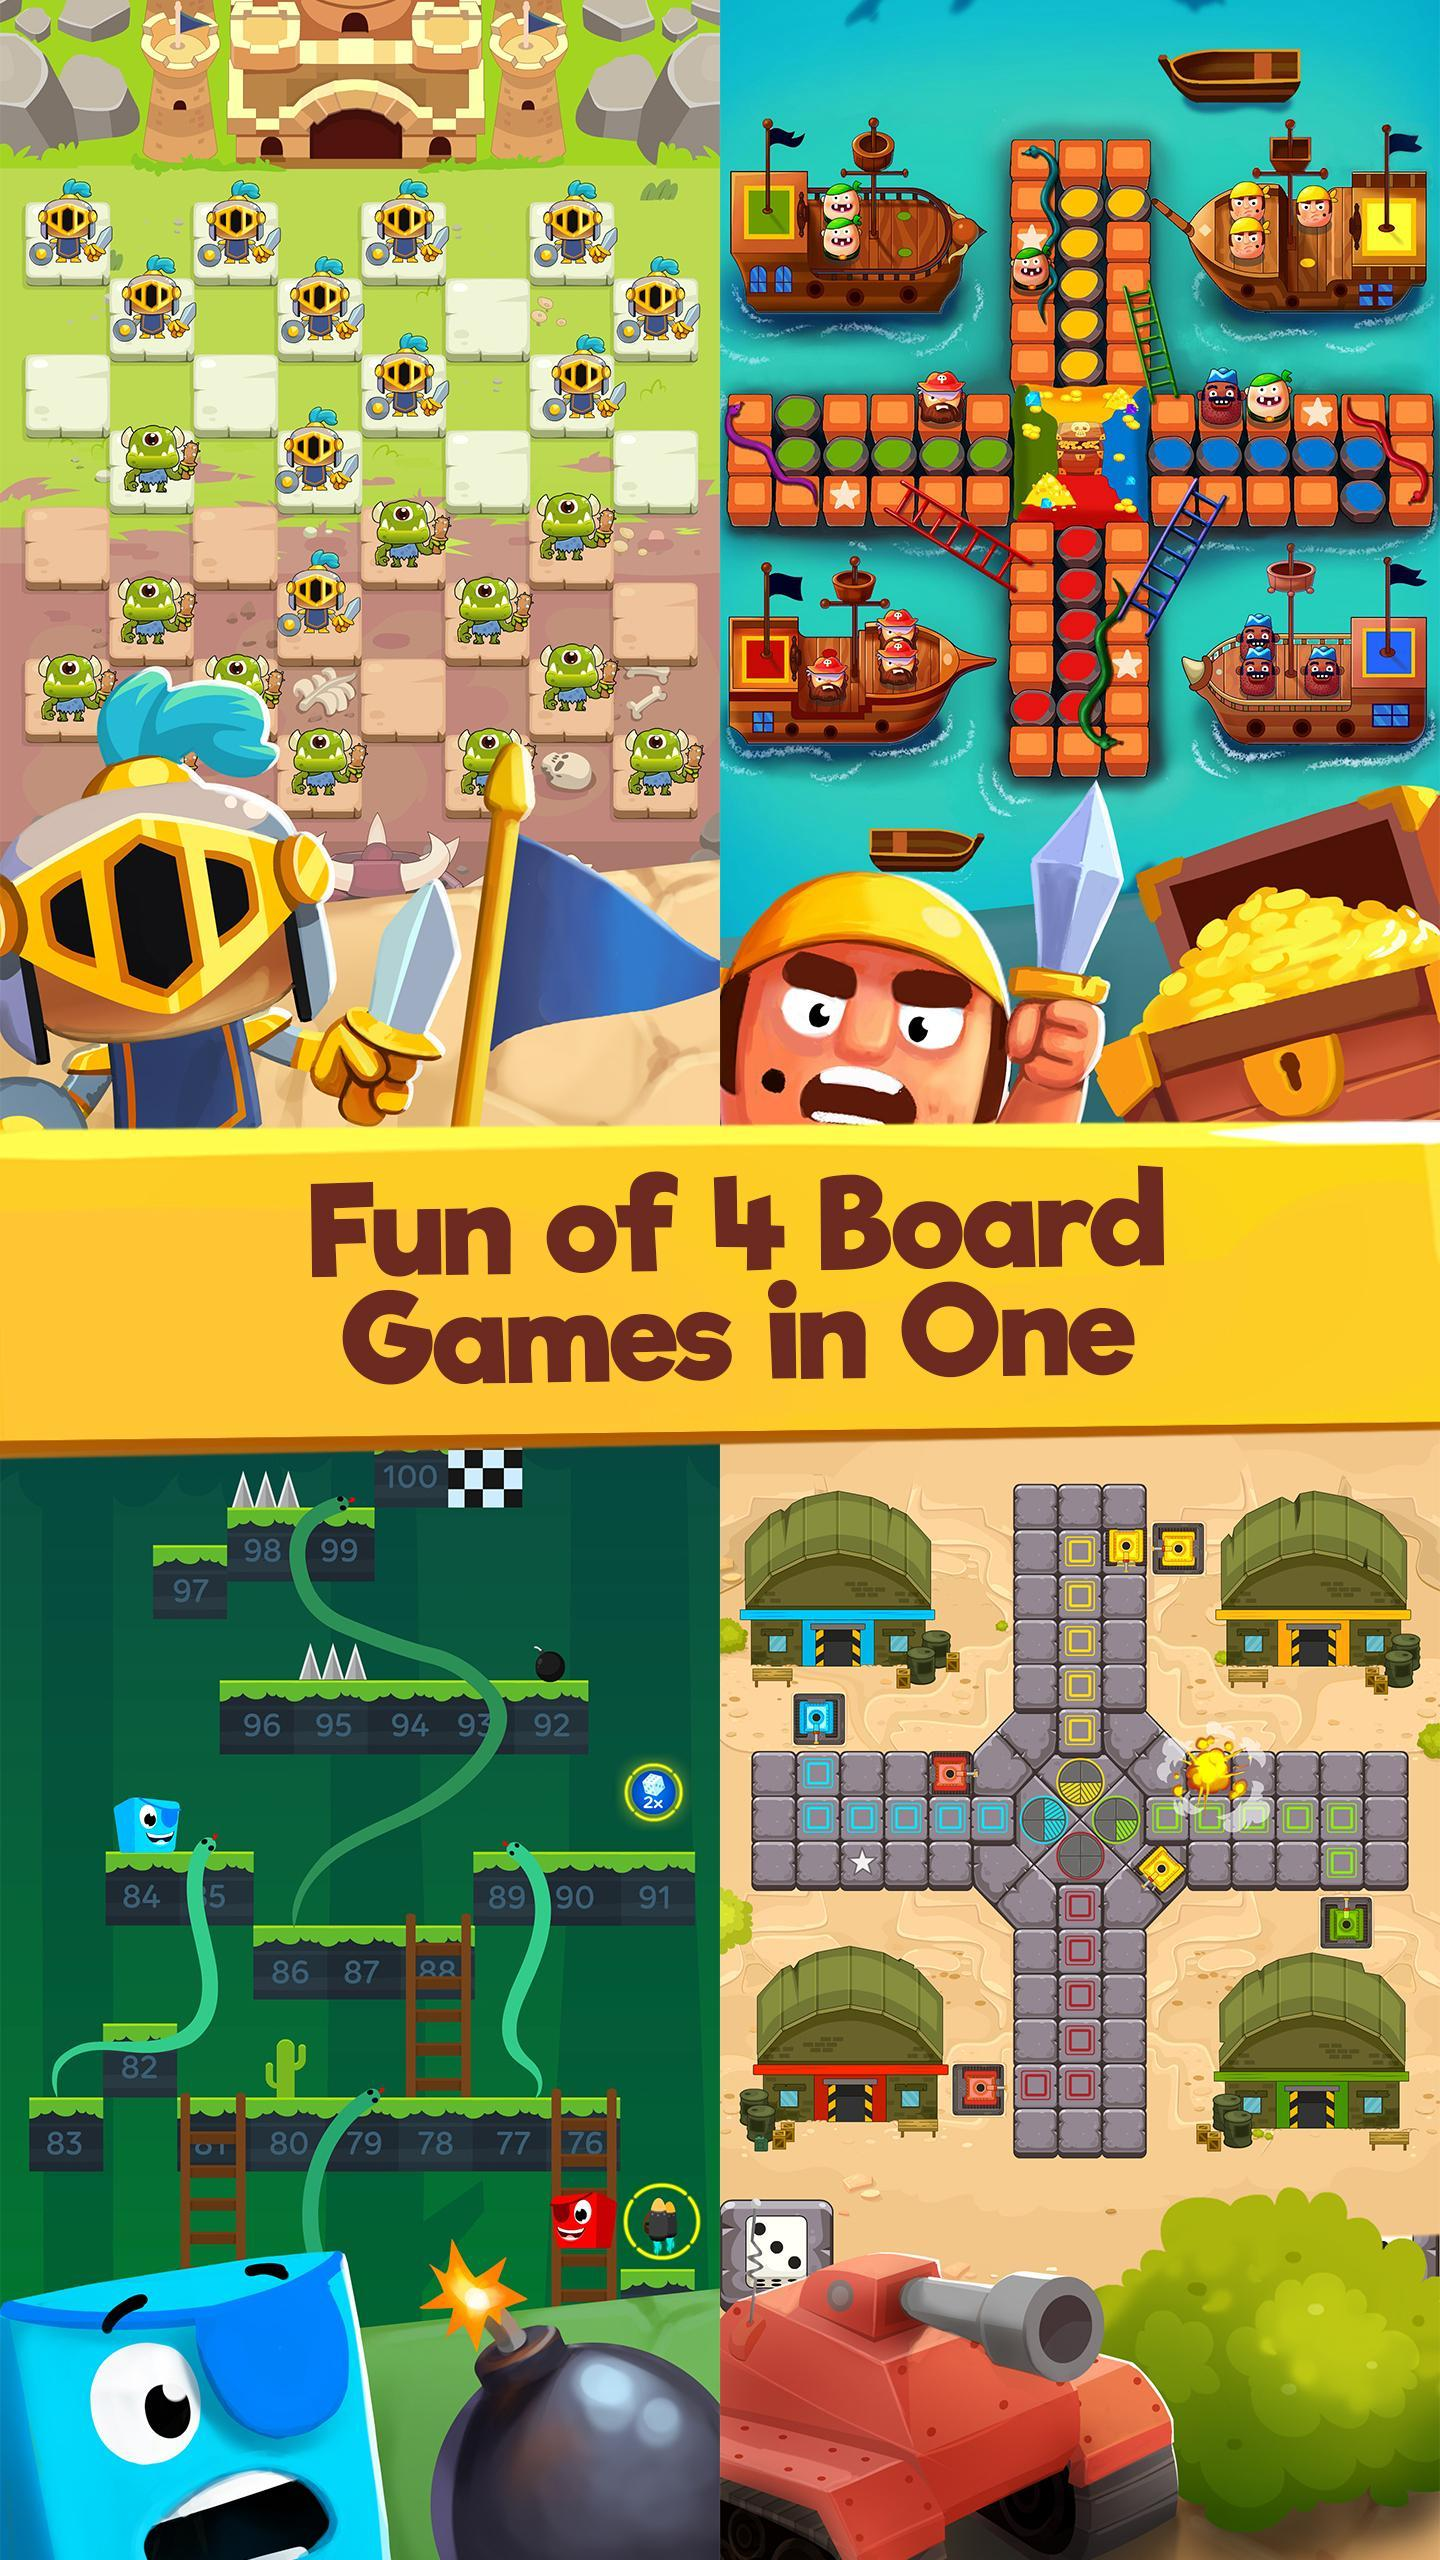 Family Board Games All In One Offline 2.1 Screenshot 7